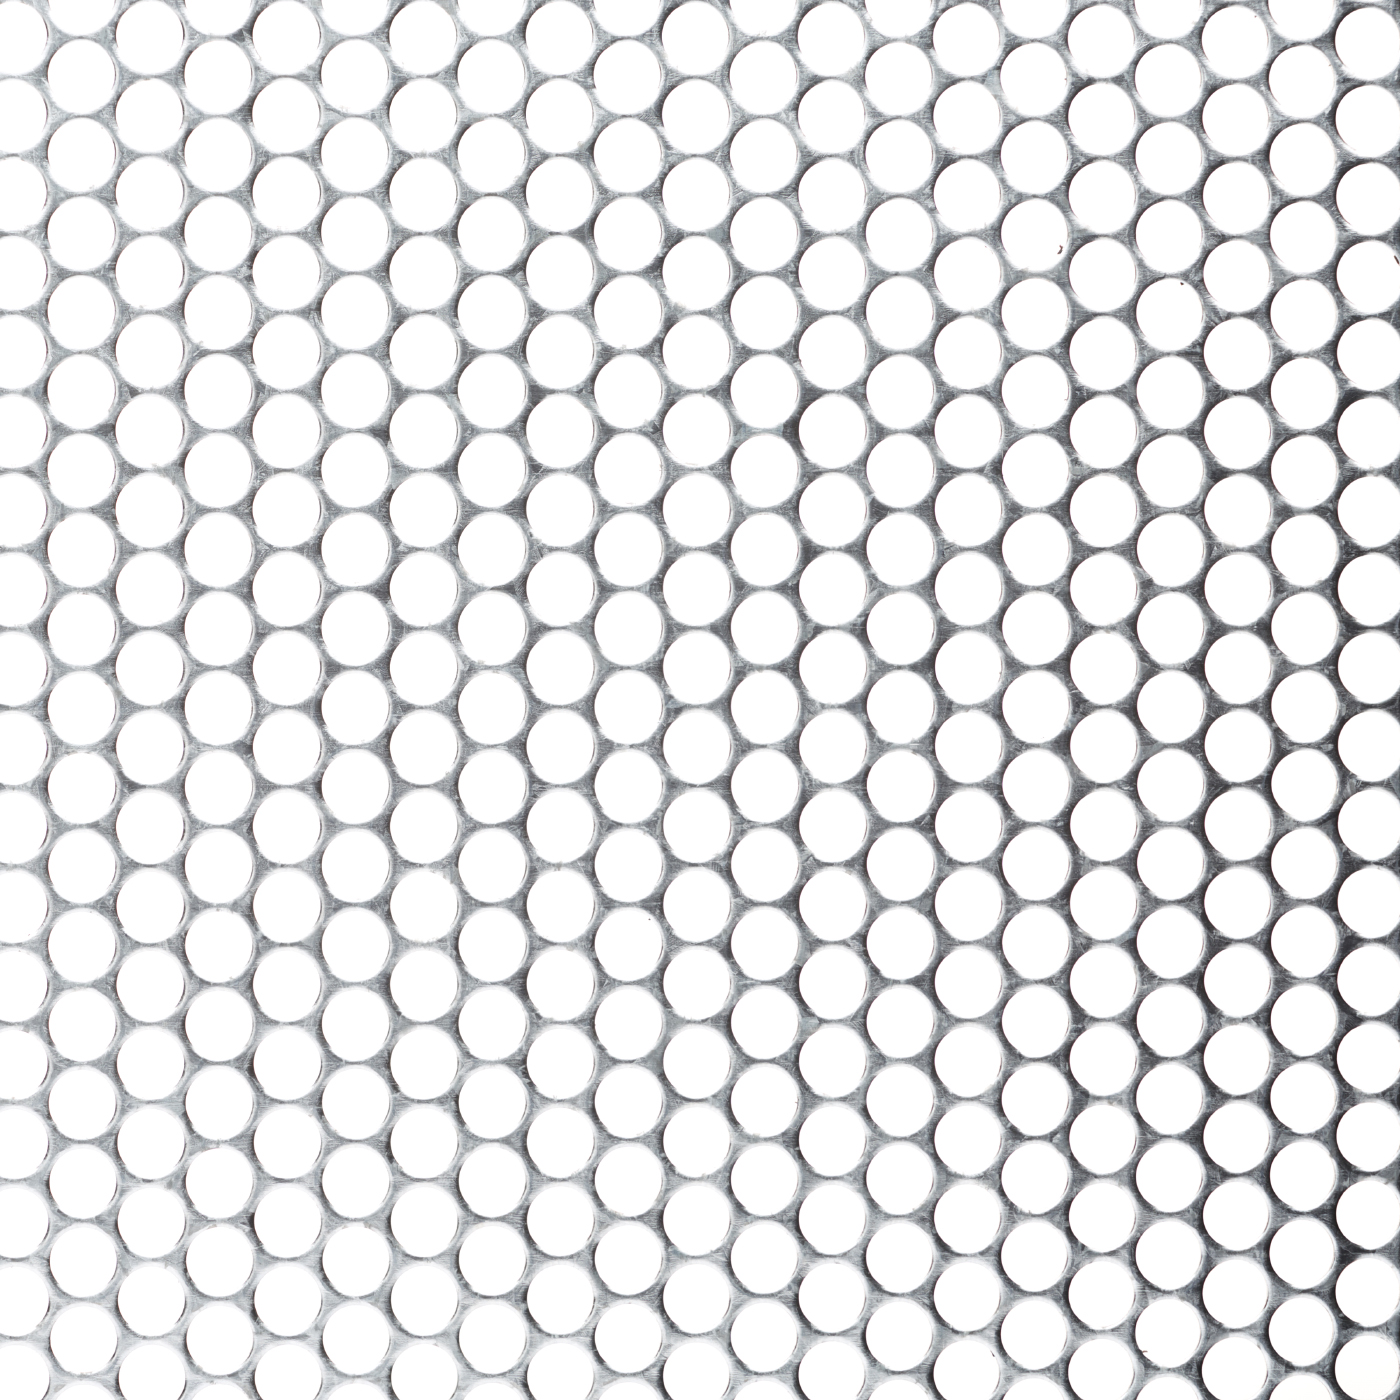 R07962 Perforated Metal Sheet 7 9mm Round 62 Open Area